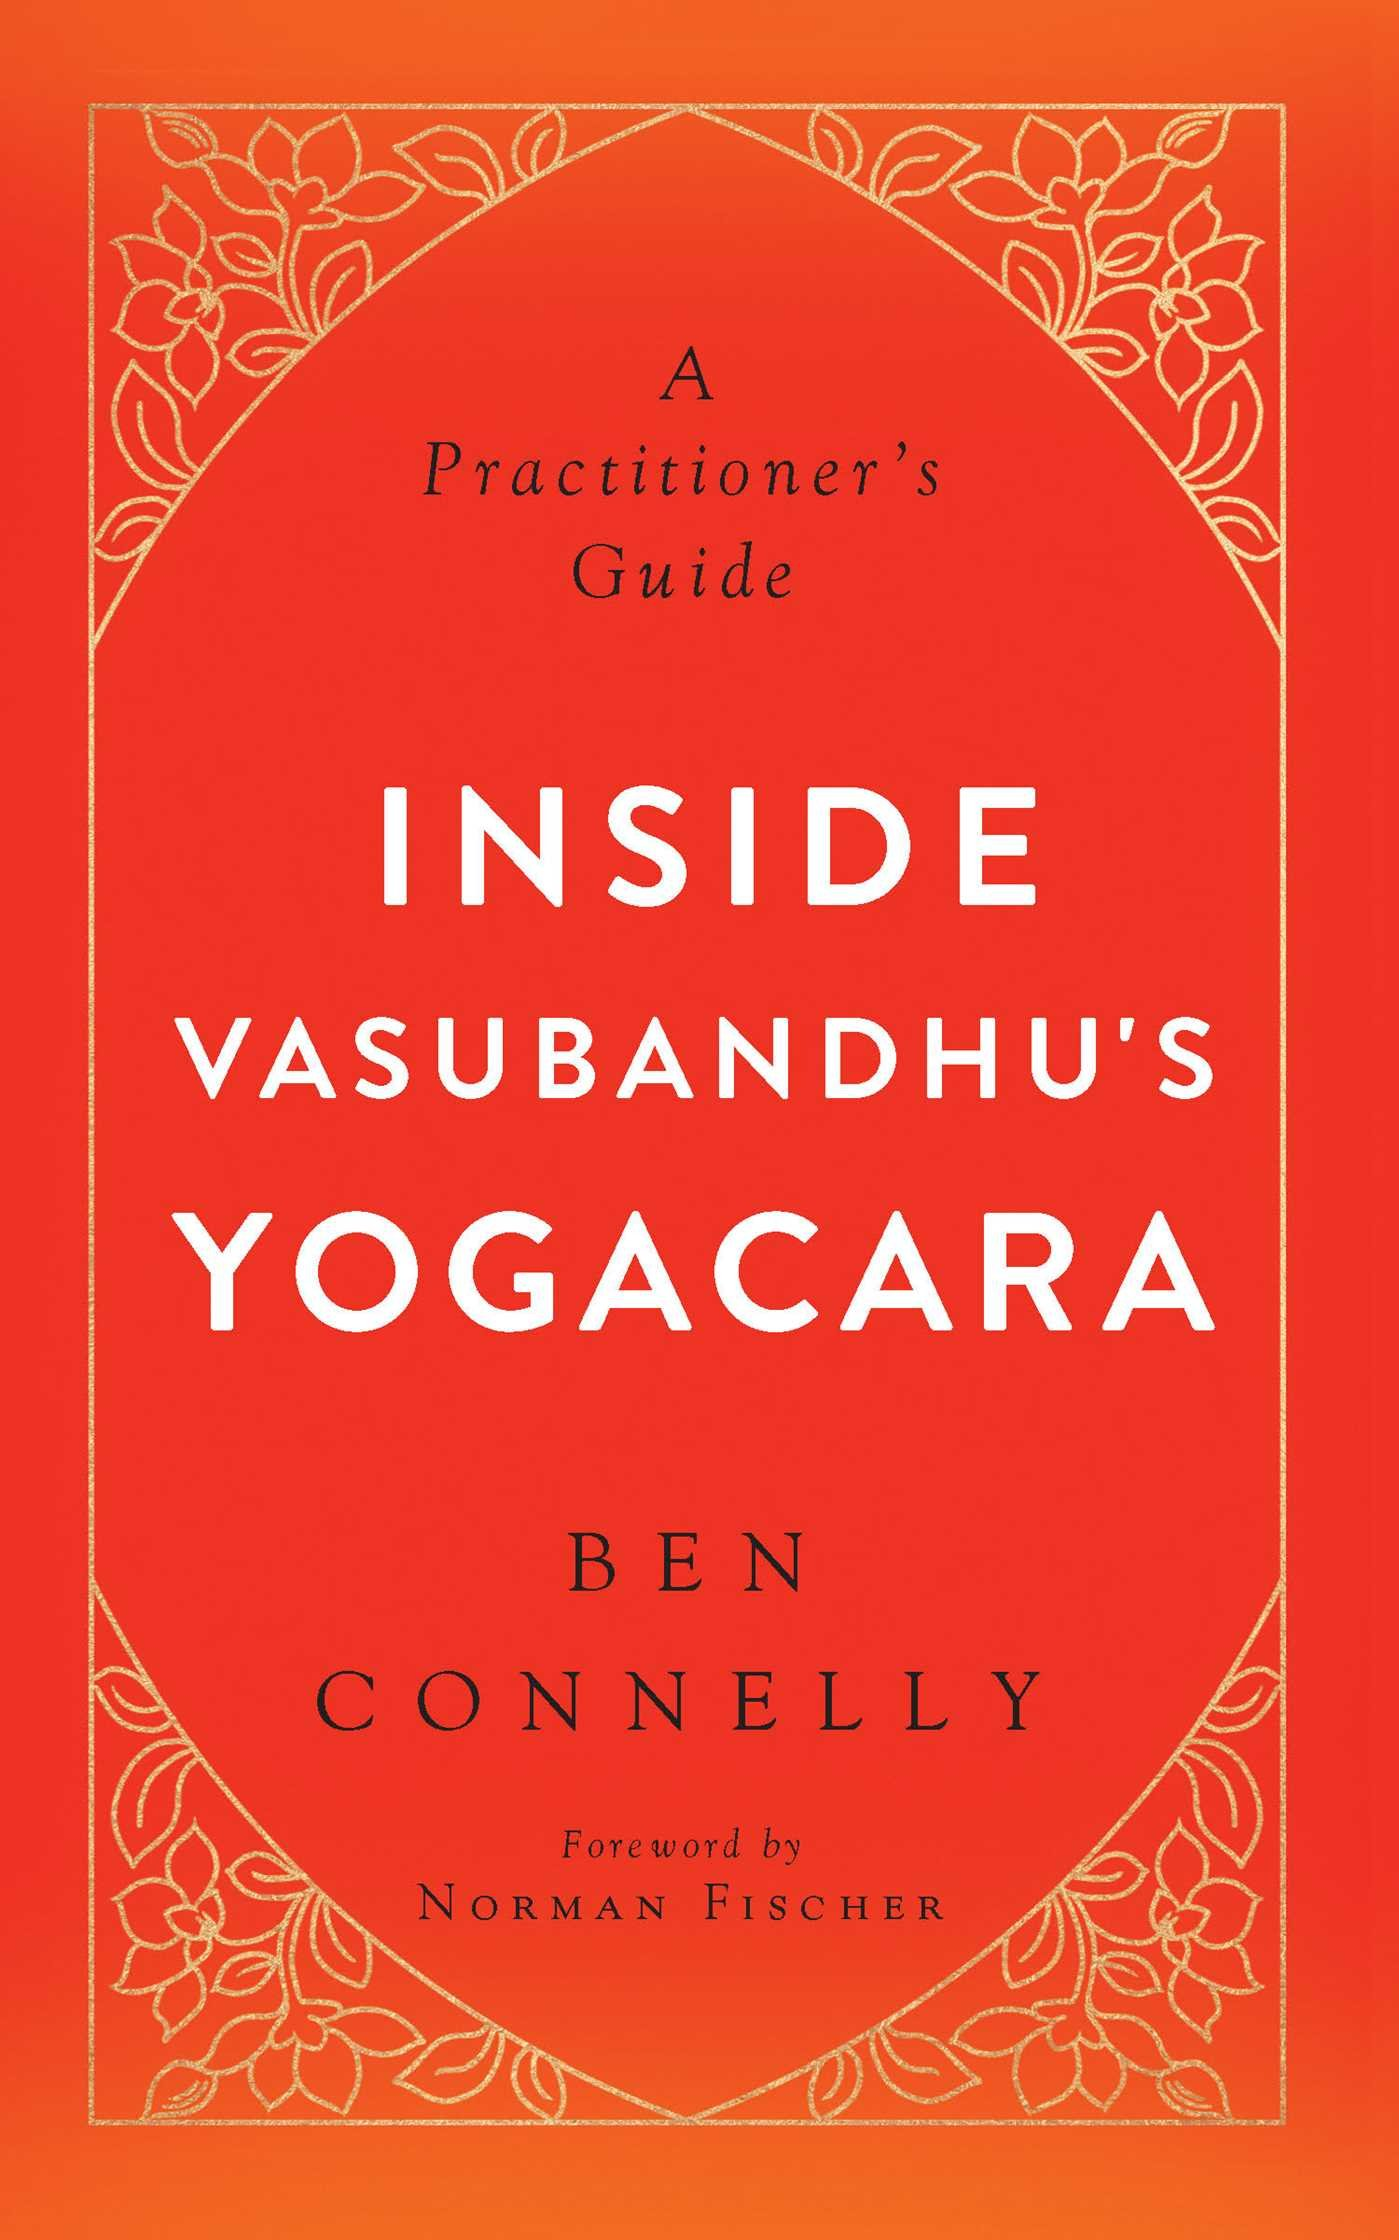 Connelly Vasubandhu's Yogacara cover art